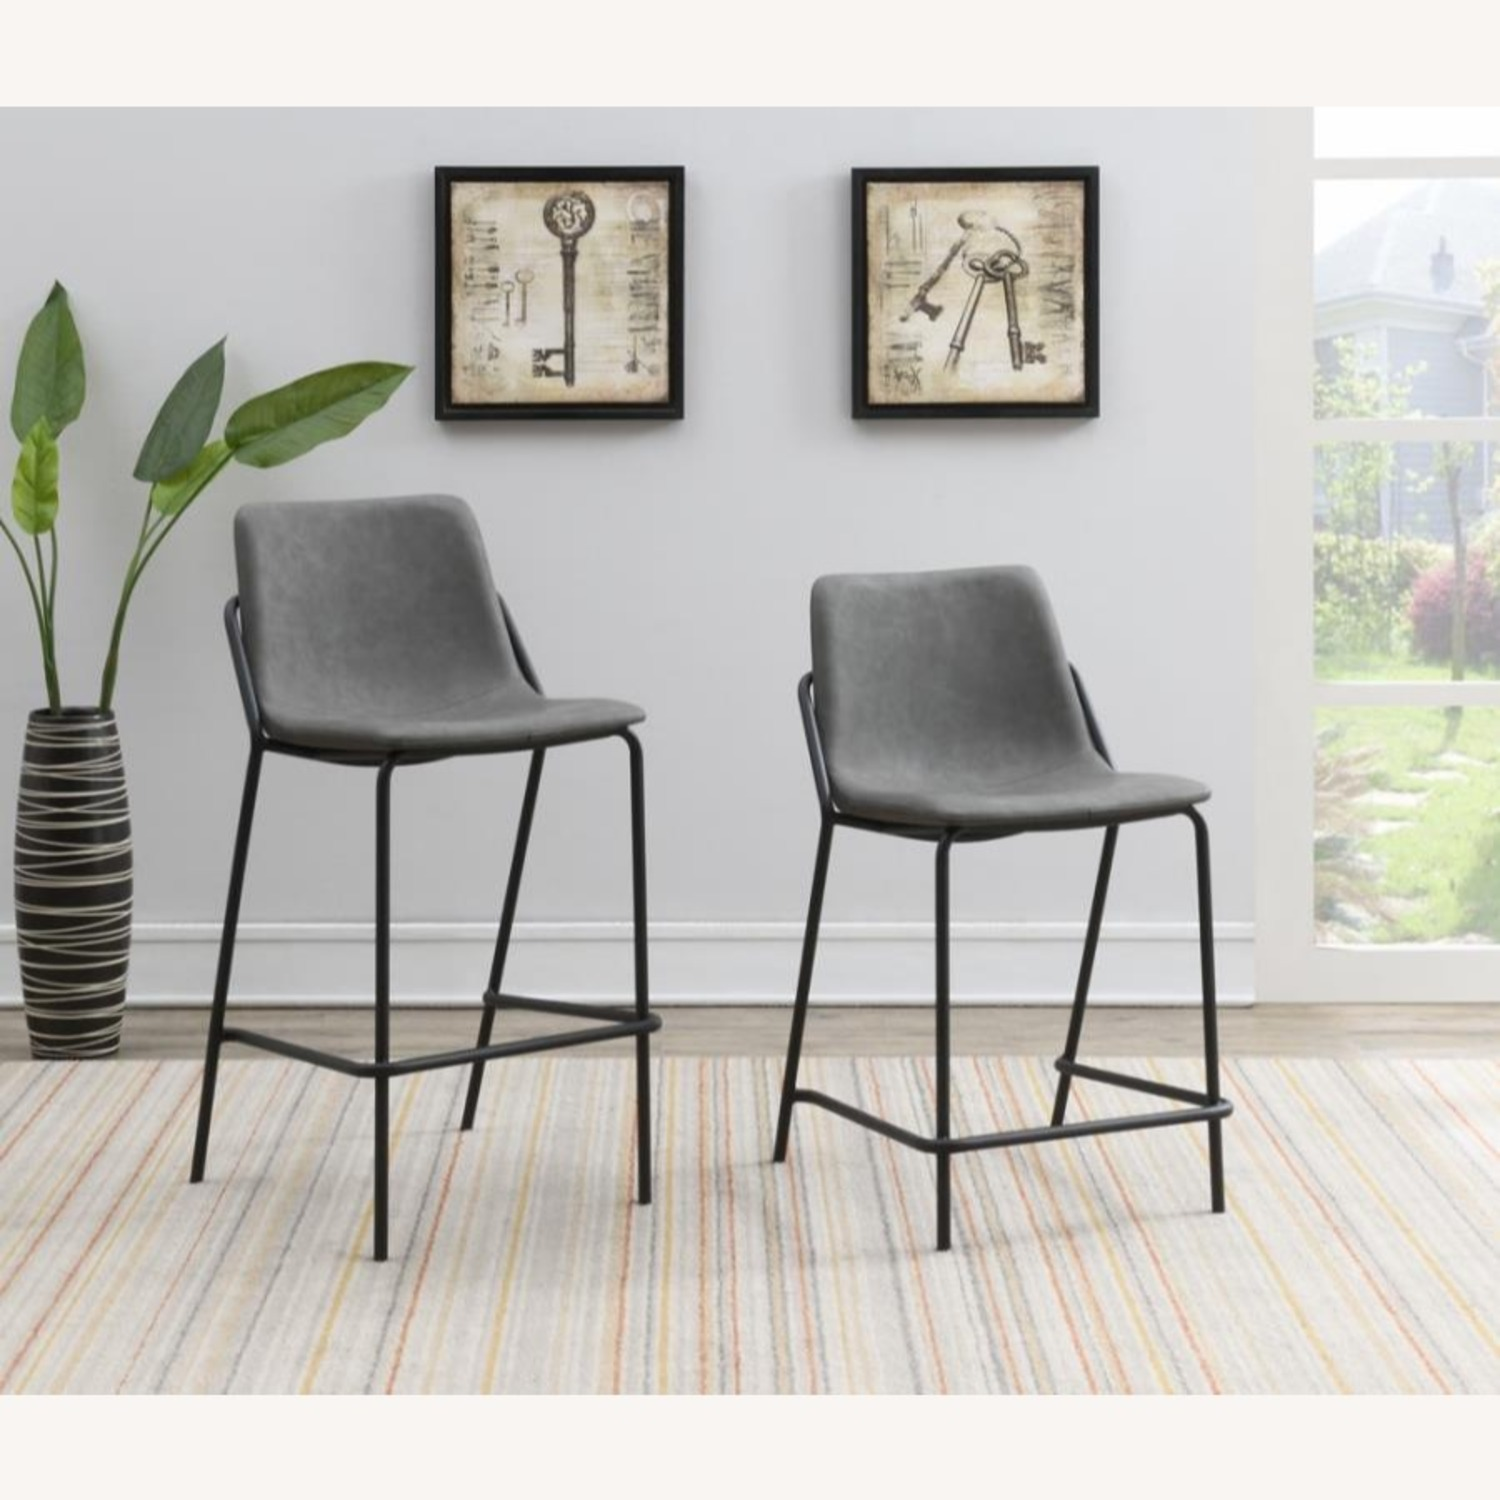 Counter Stool In Grey Leather & Black Metal Finish - image-5